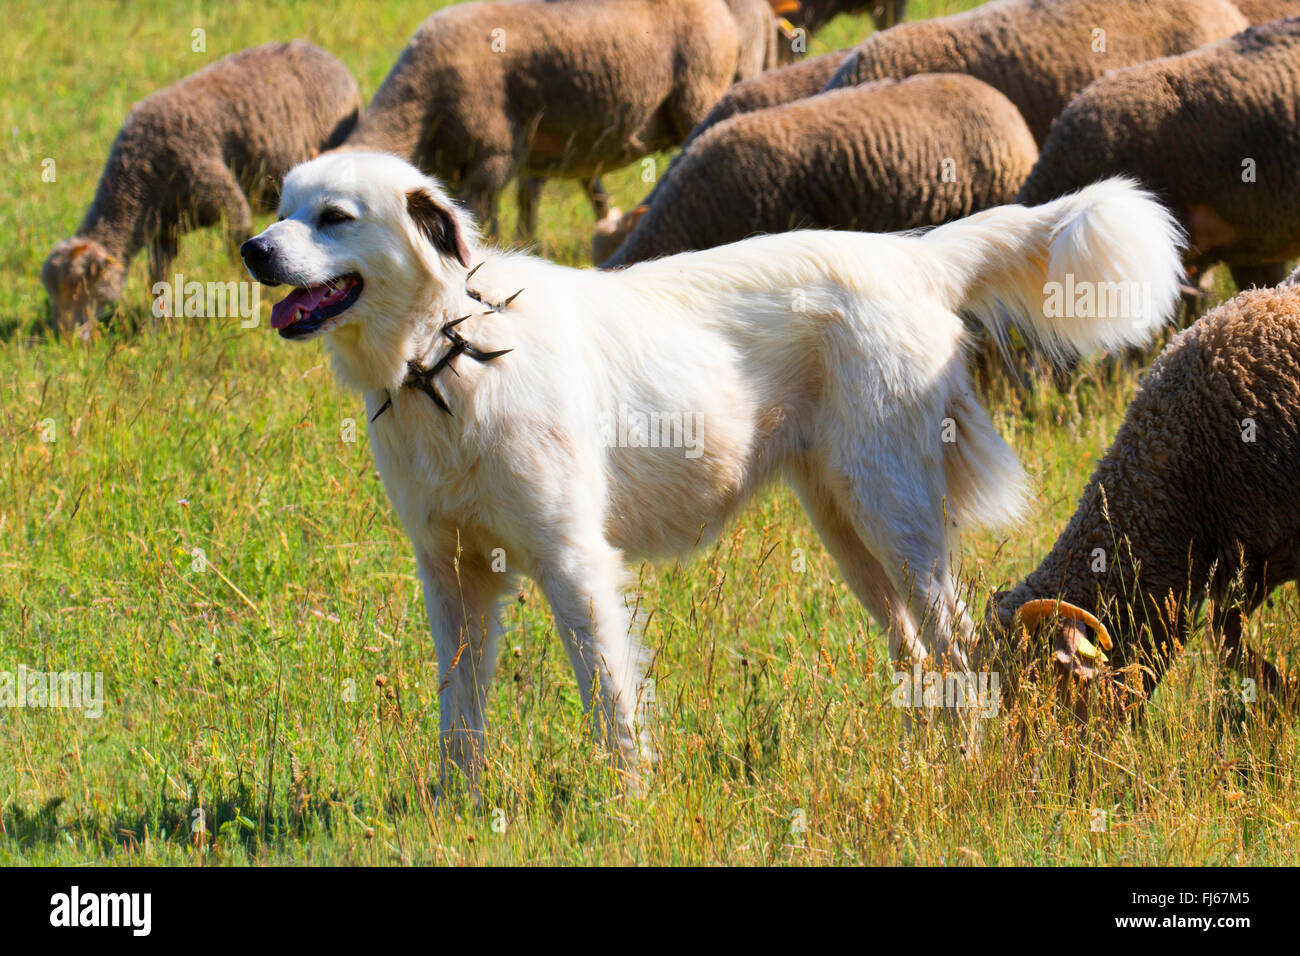 livestock guardian dog with prong collar tending a flock of sheep, Germany - Stock Image